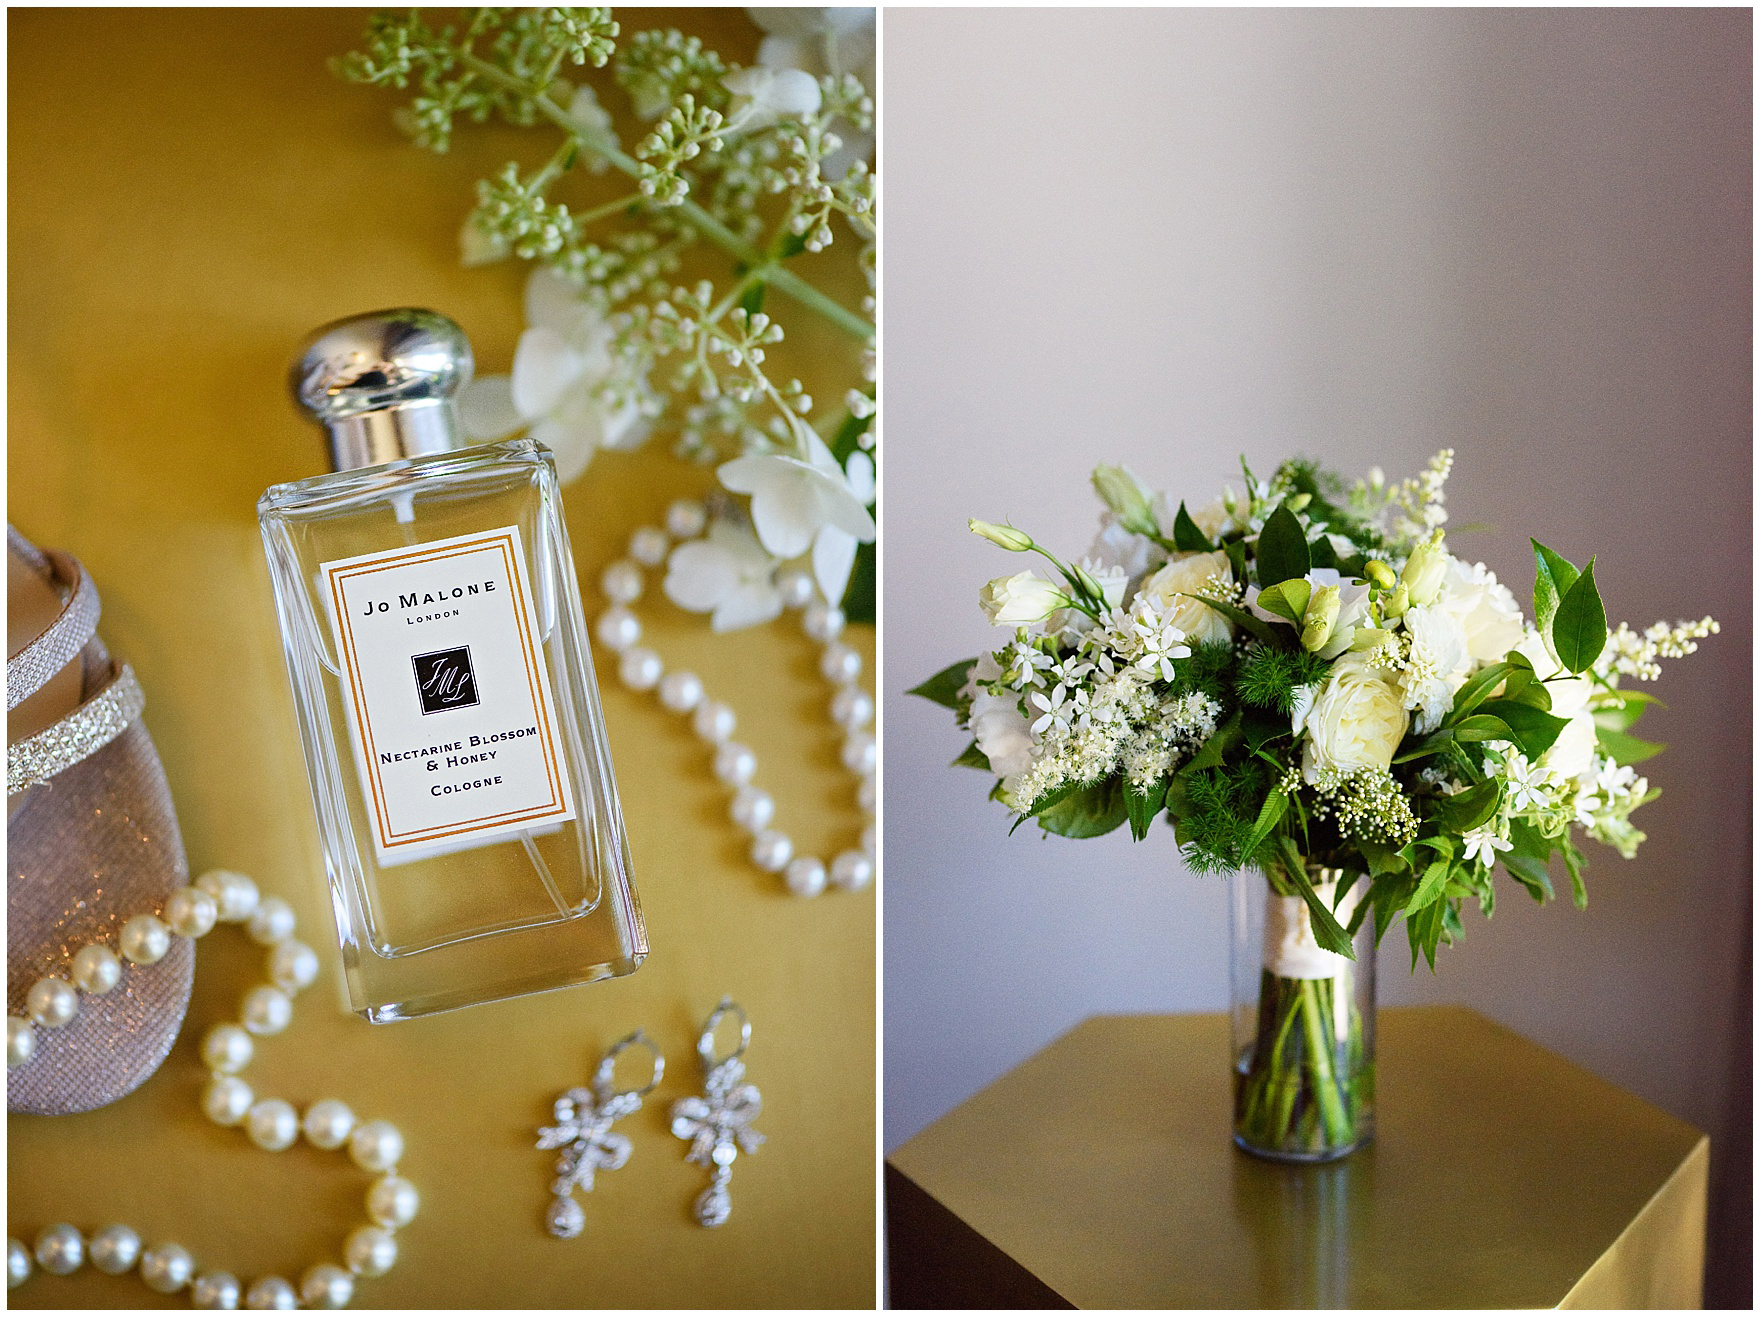 Details of the brides pearl accessories, Jo Malone perfume, and Flowers for Dreams bridal bouquet for a Butterfield Country Club wedding.